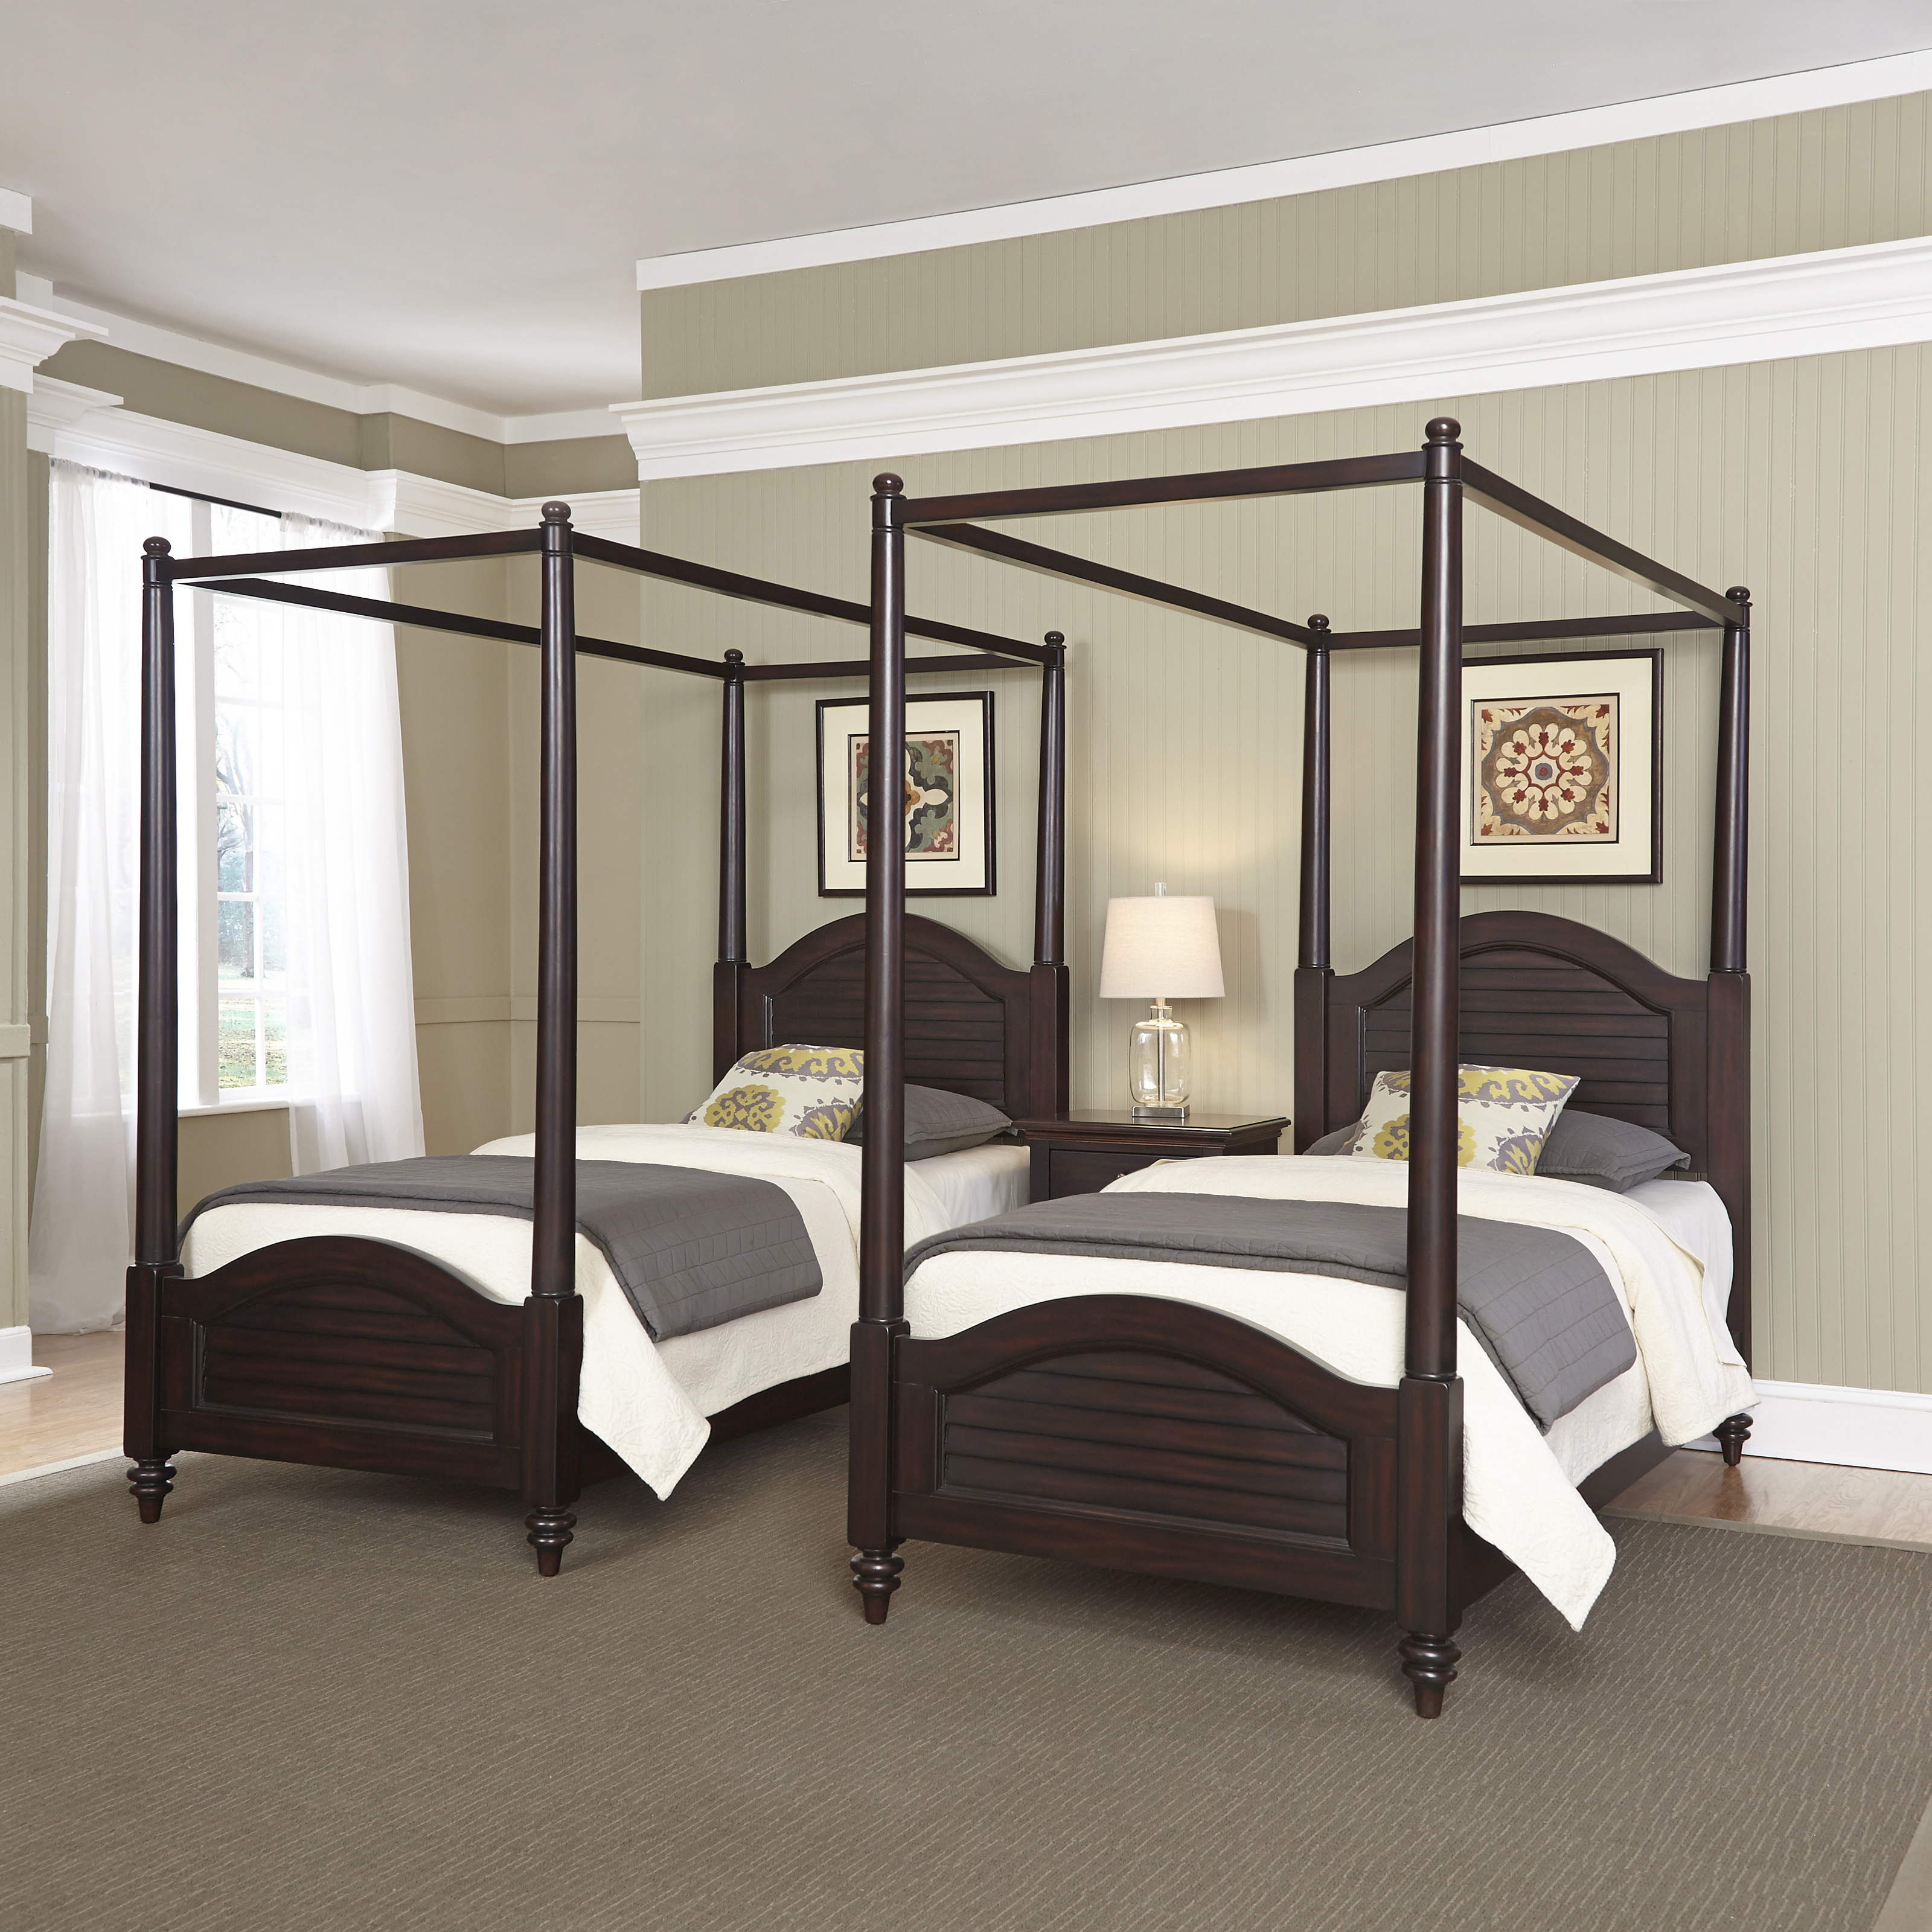 Twin Canopy Beds